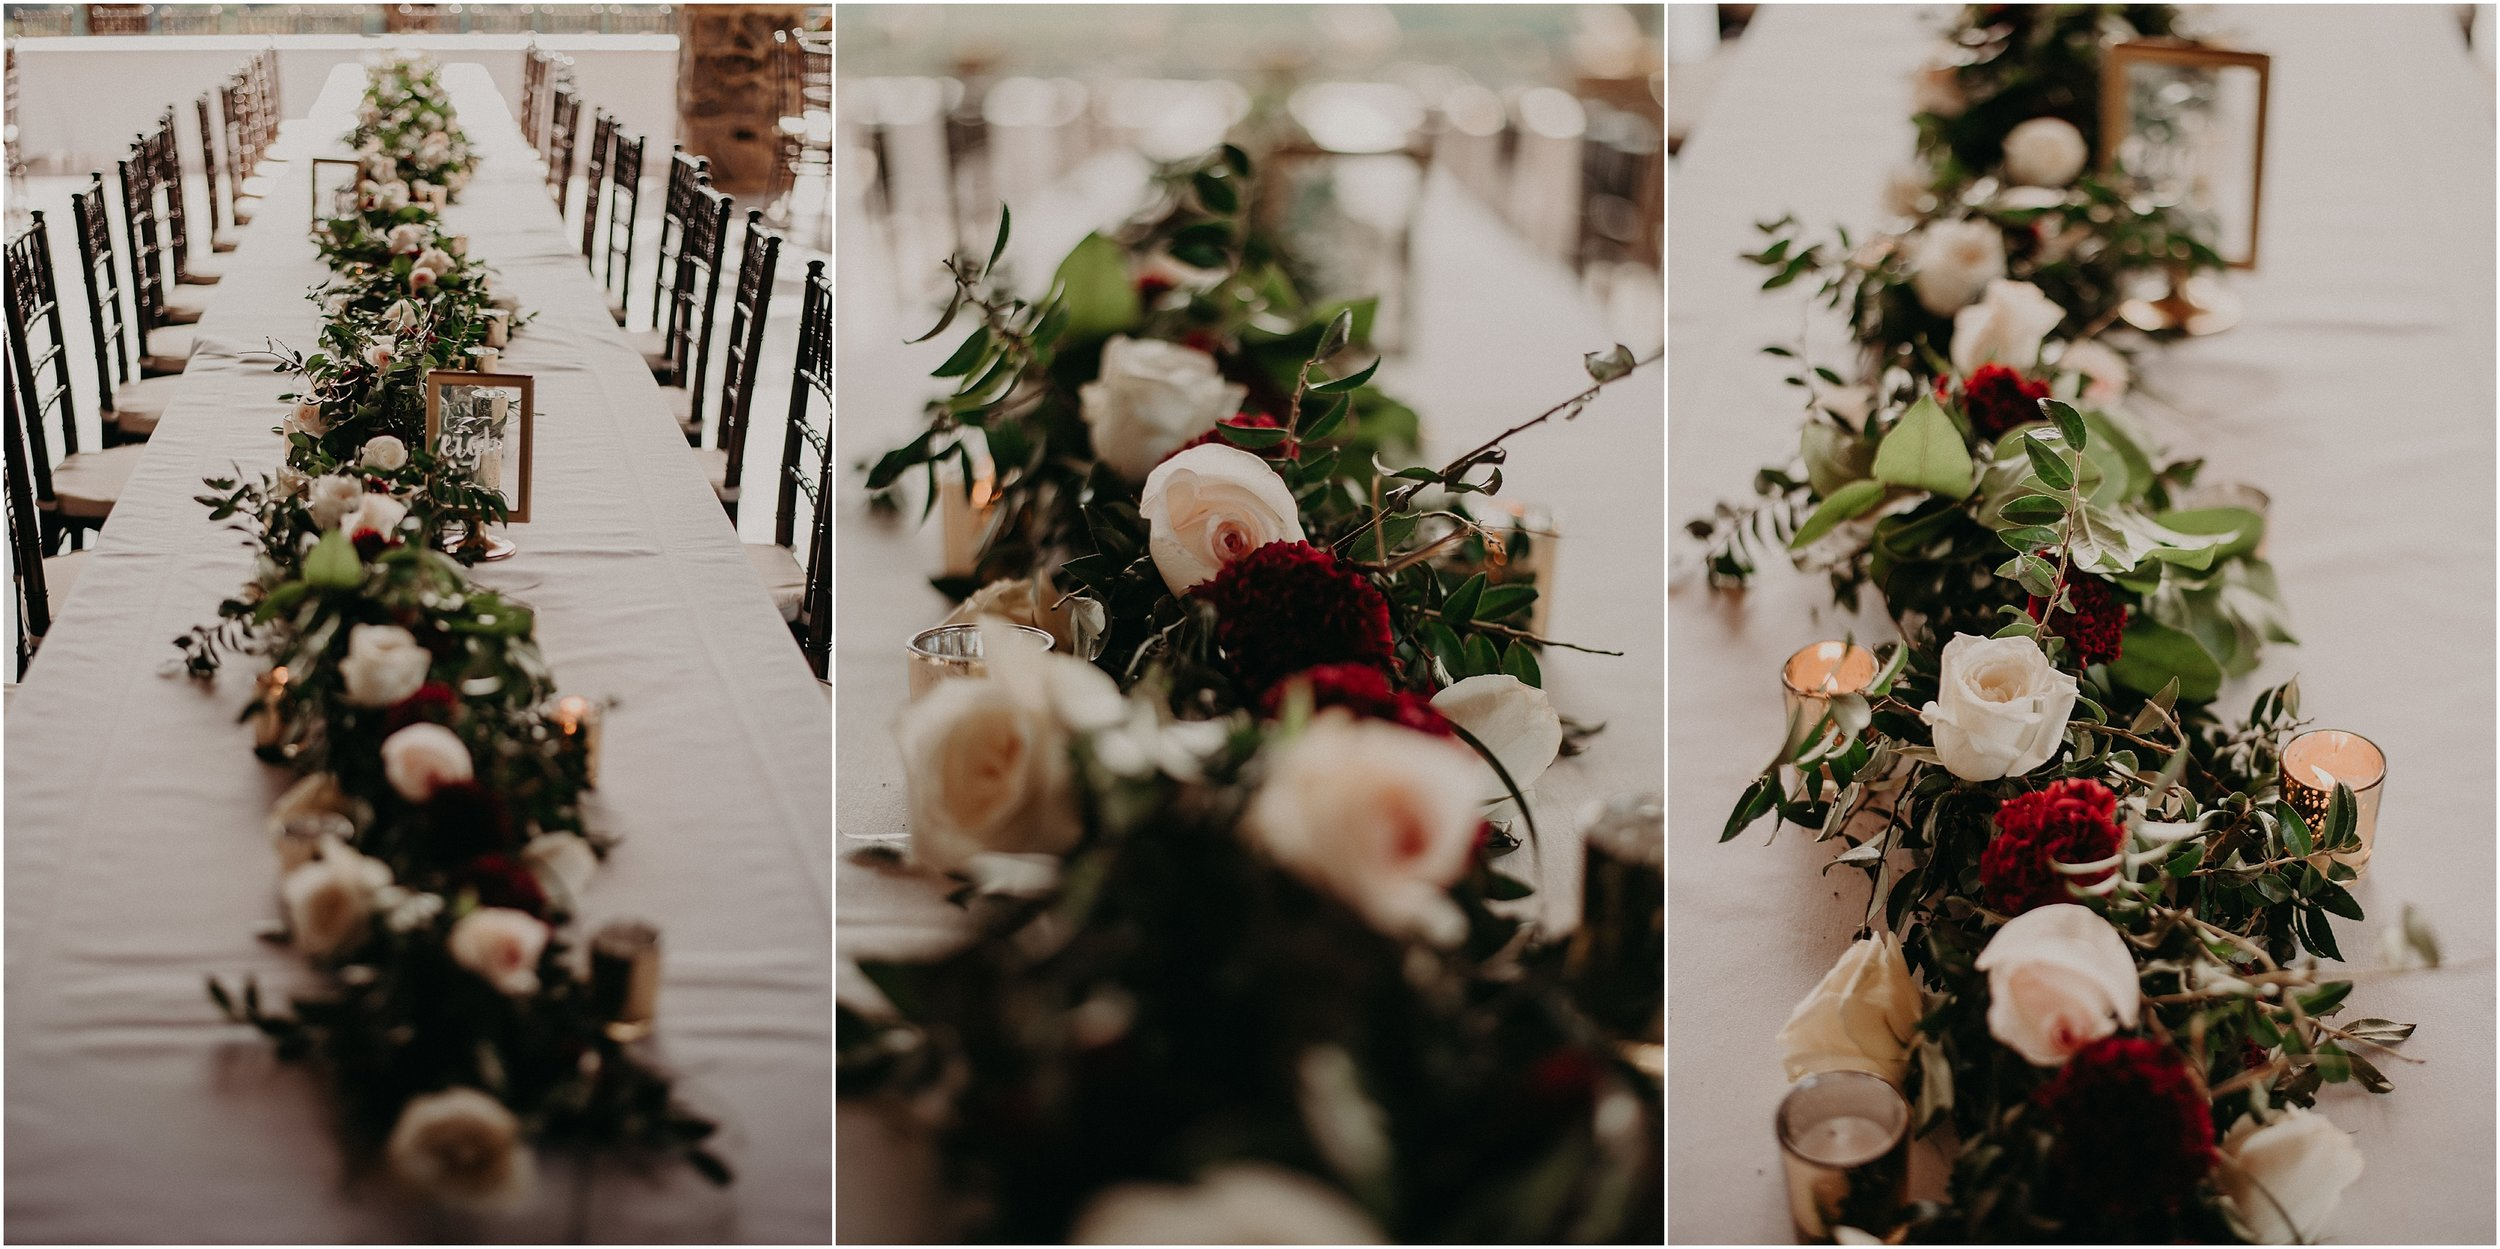 Centerpiece floral garland by Chickamauga Florist